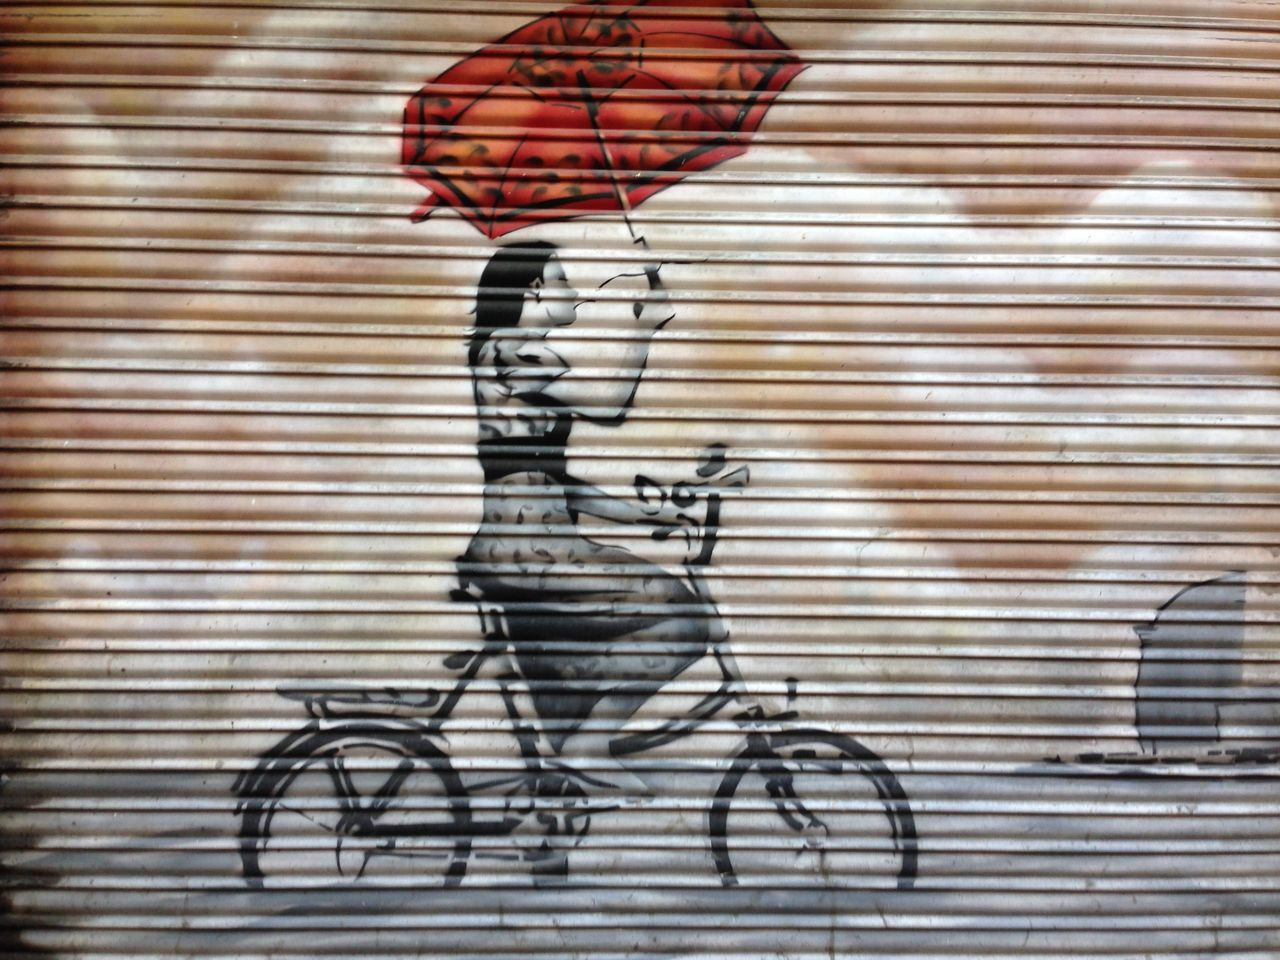 Architecture Barça Bike Bikes Black And White Day G Girl On Bik Graffiti One Girl Cyclin One Girl Cycling One Person Outdoor Outdoors Pain Parasol Red Umbrella Relaxing Shutter Shutter Pain V